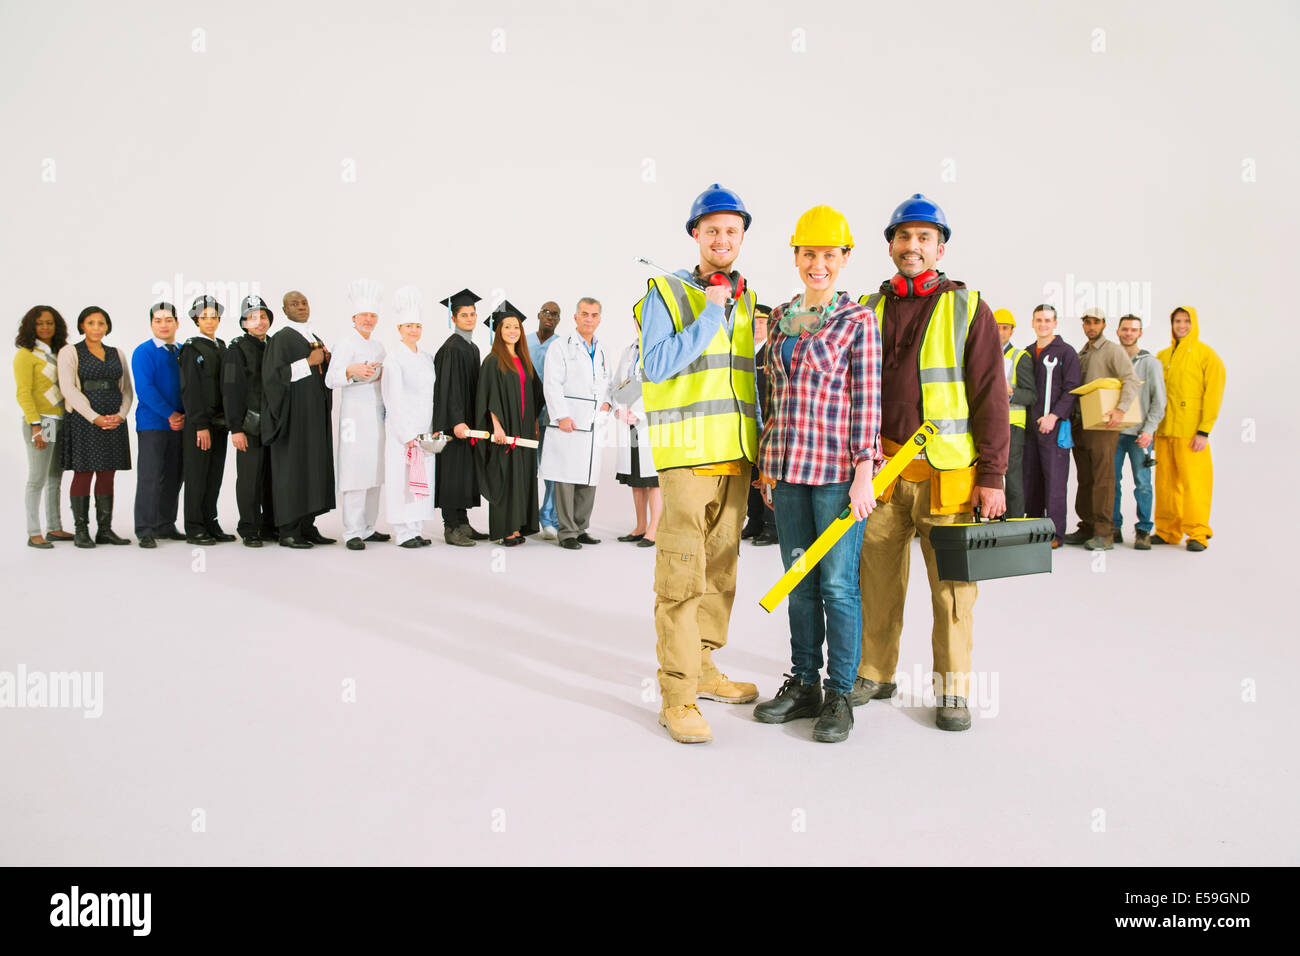 Portrait of construction workers in front of workforce - Stock Image